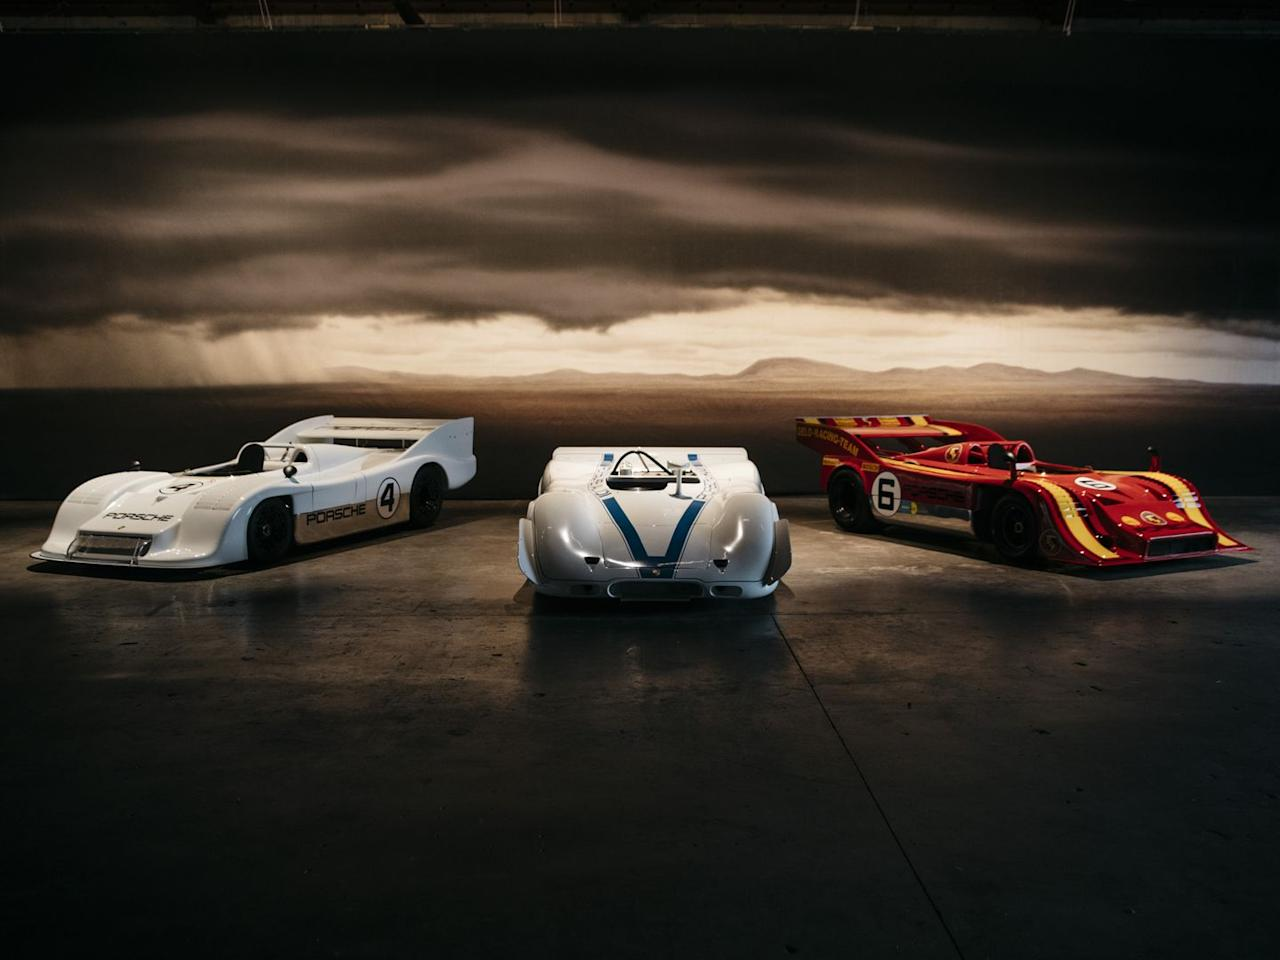 <p>Past Luftgekühlt event have featured some rare and museum cars, artfully displayed indoors. This year, the drama was heightened with low lighting and a moody matte painting behind this (from left to right) 917/30, 917 P/A Can-Am, and 917/10.</p>